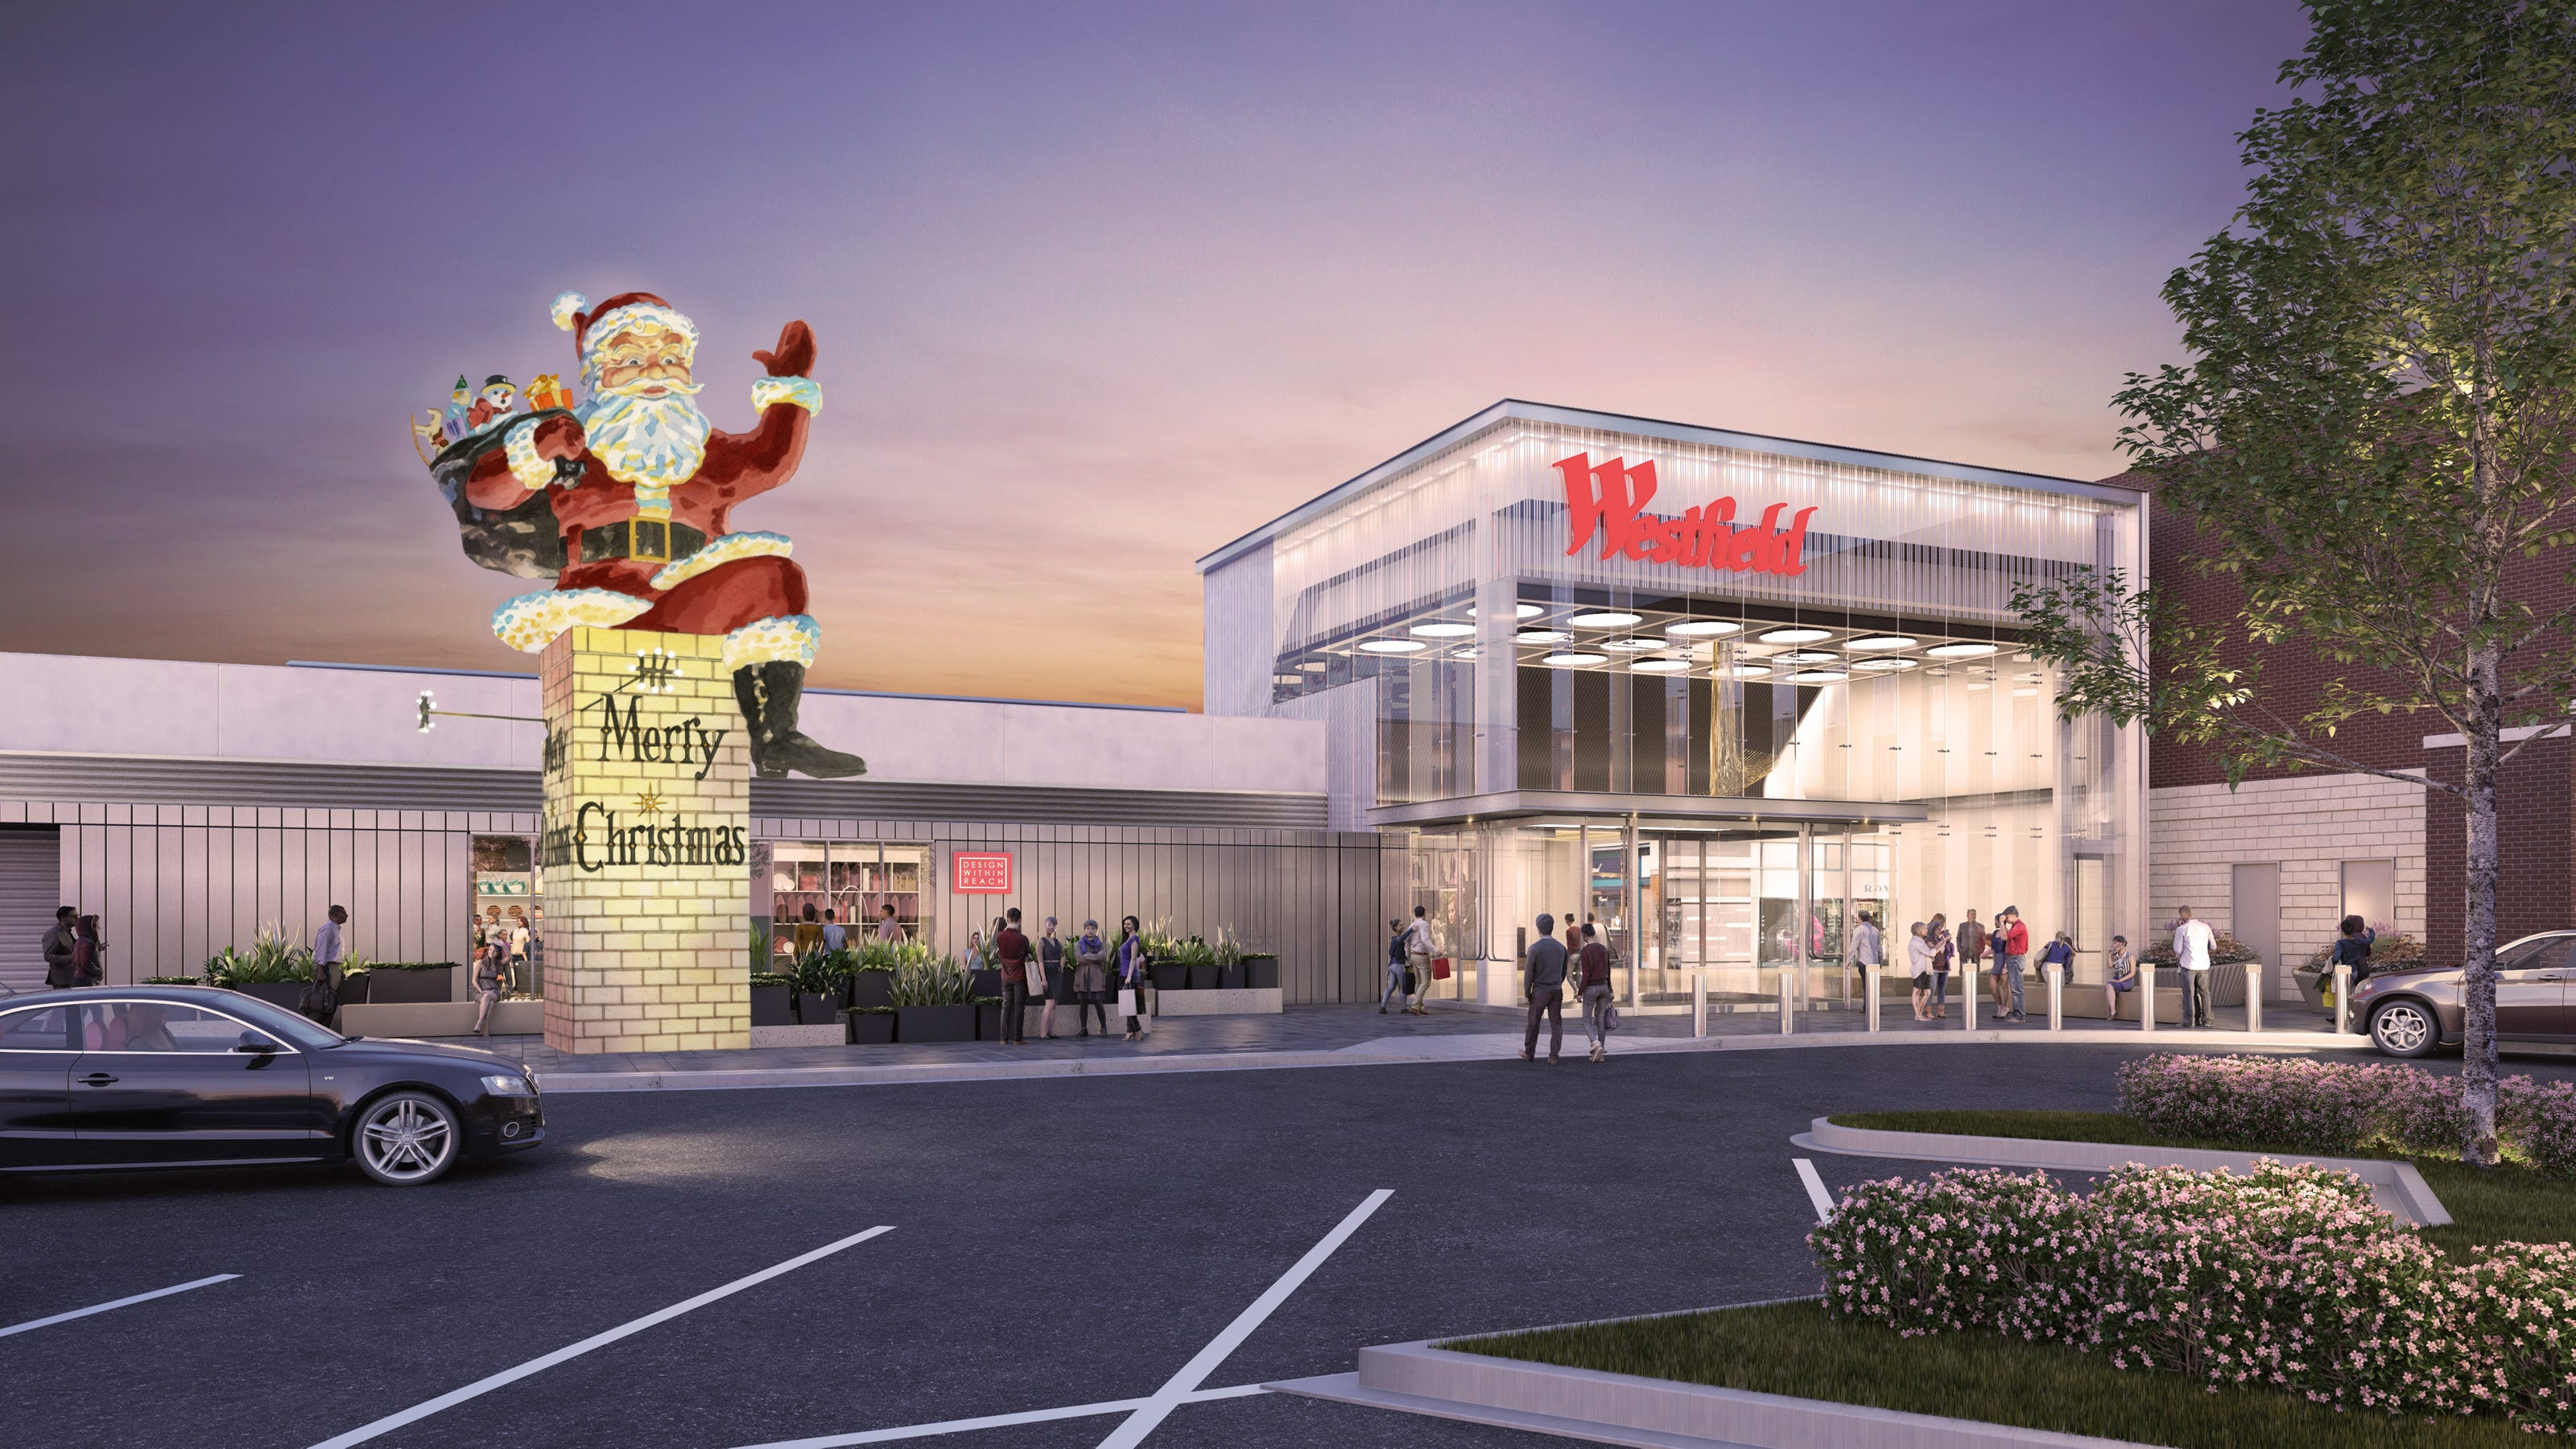 Big Santa coming back to Garden State Plaza in Paramus